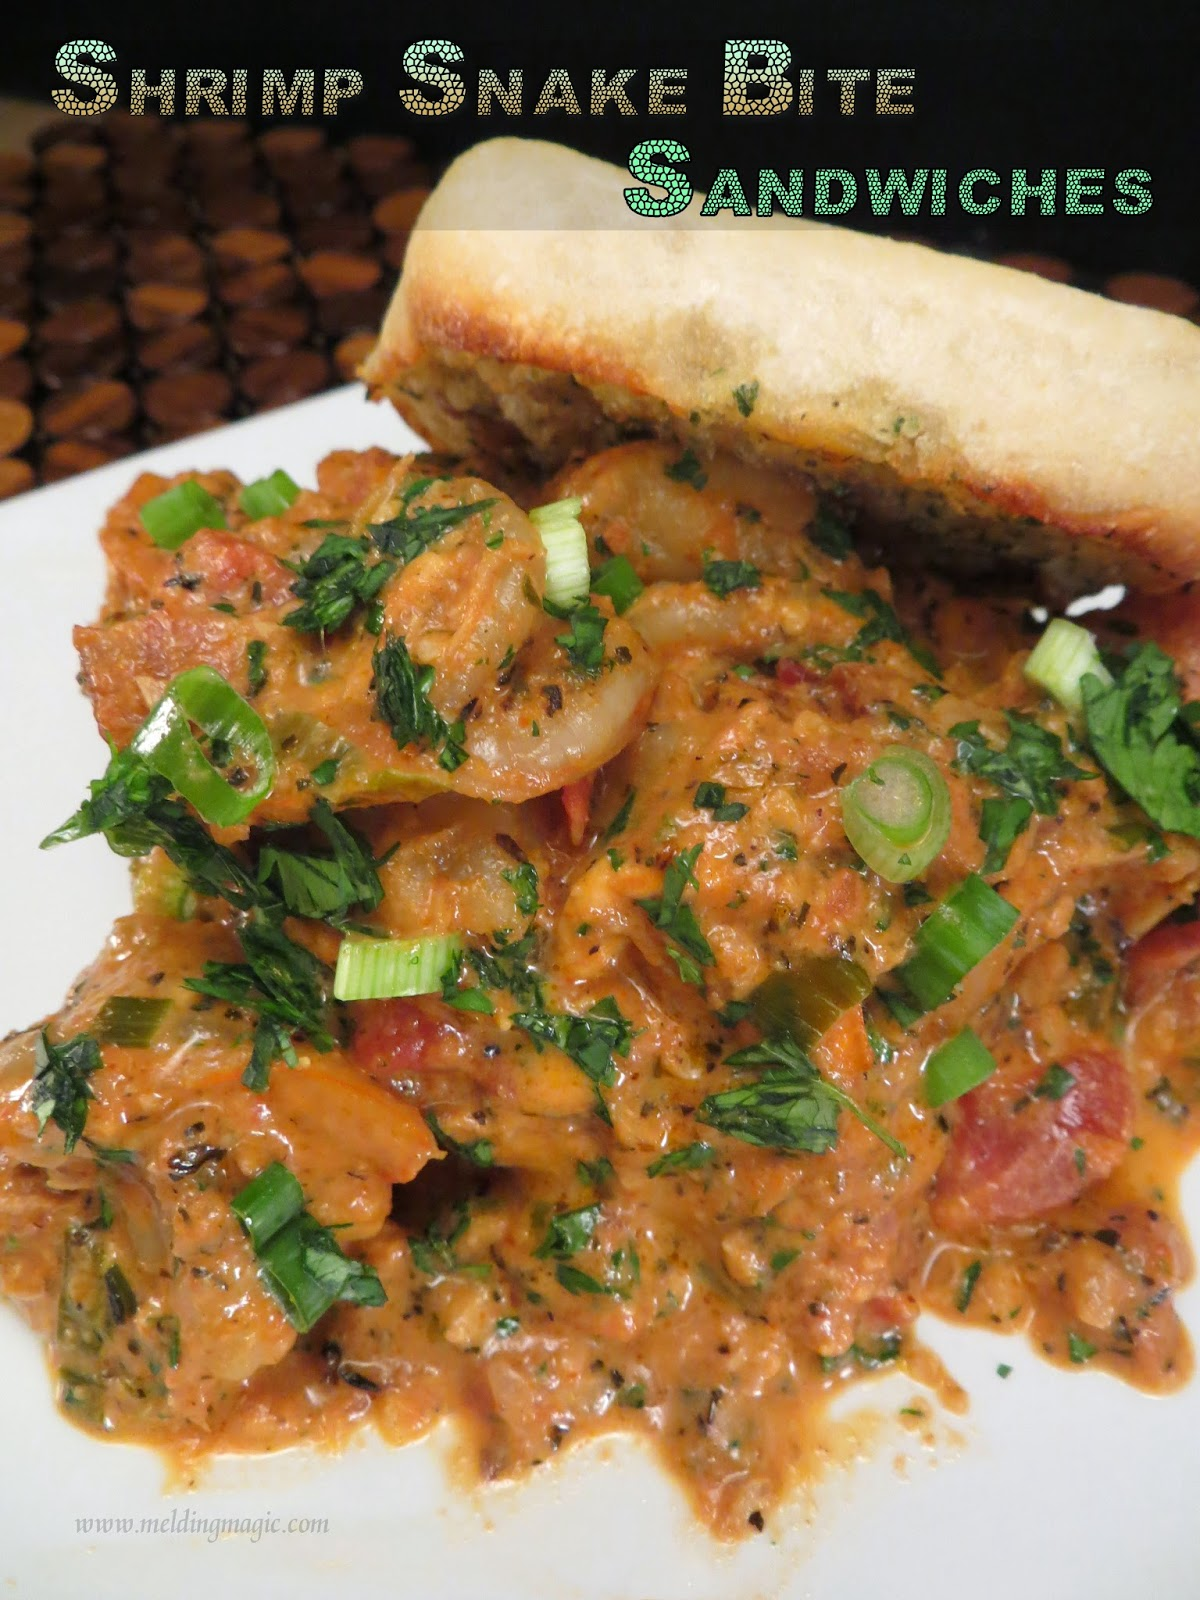 Spicy Shrimp Sandwiches